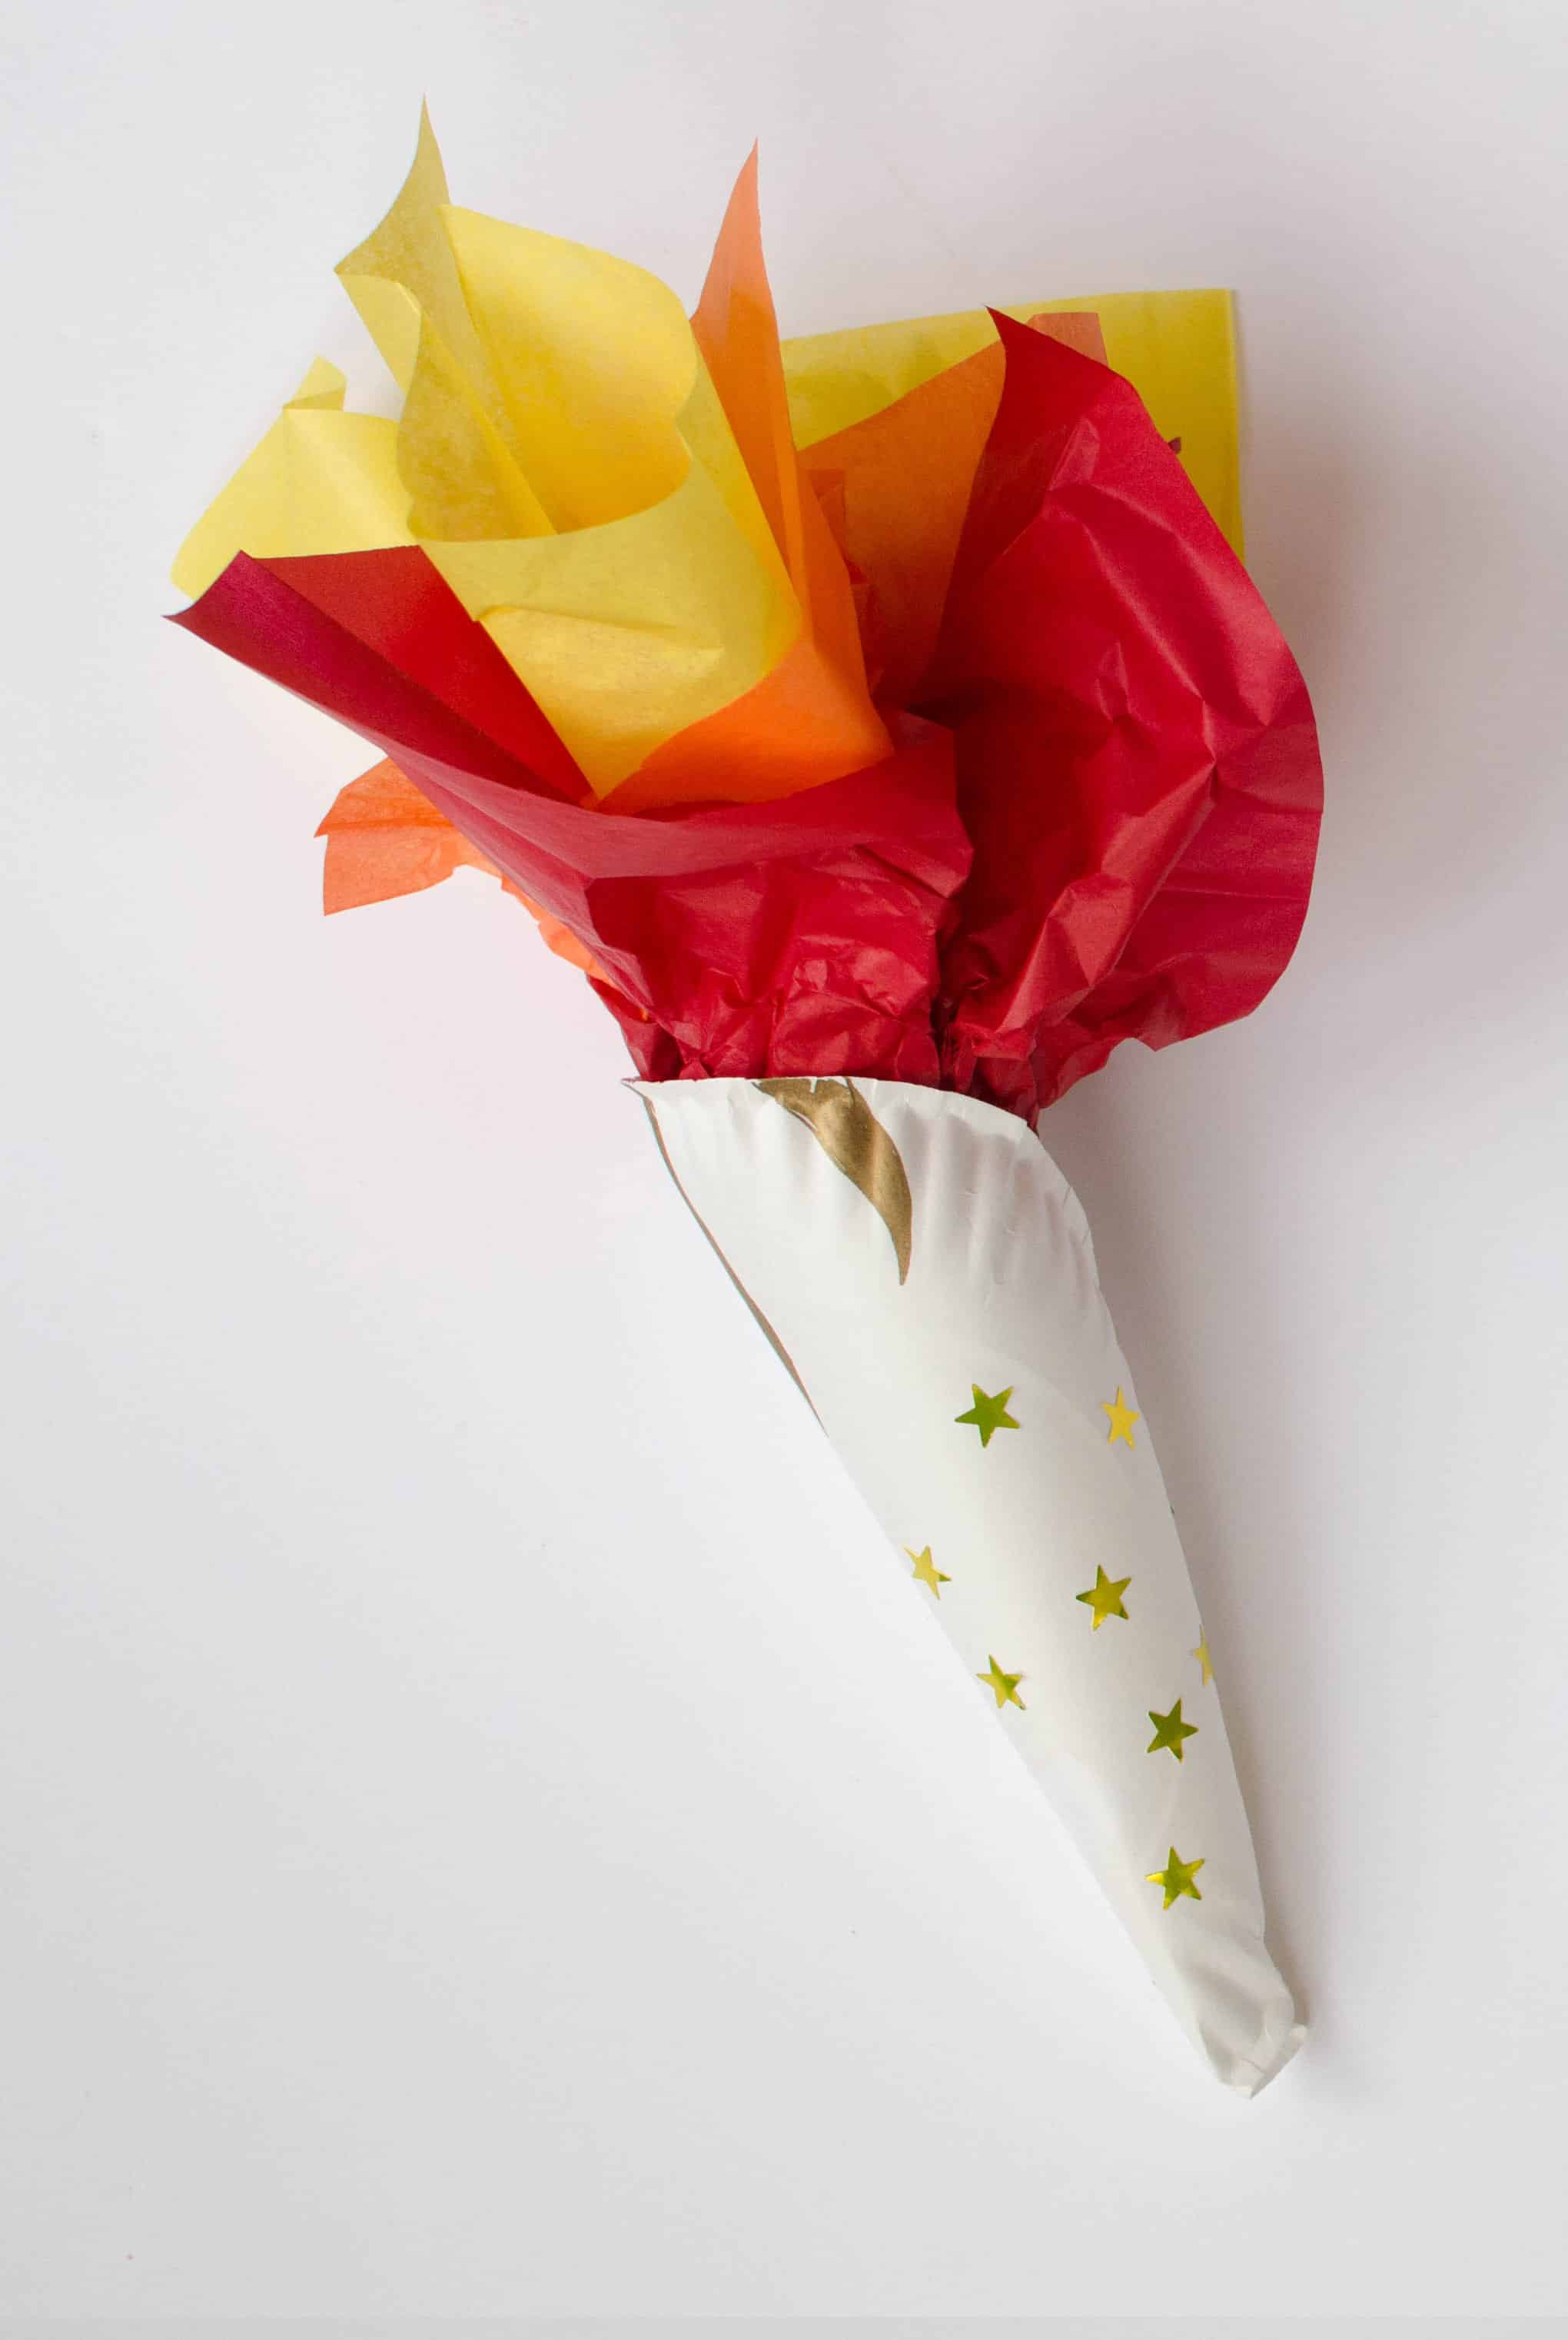 Olympic torch craft for 2018 Winter Olympics. Made with paper plate and gold star stickers.